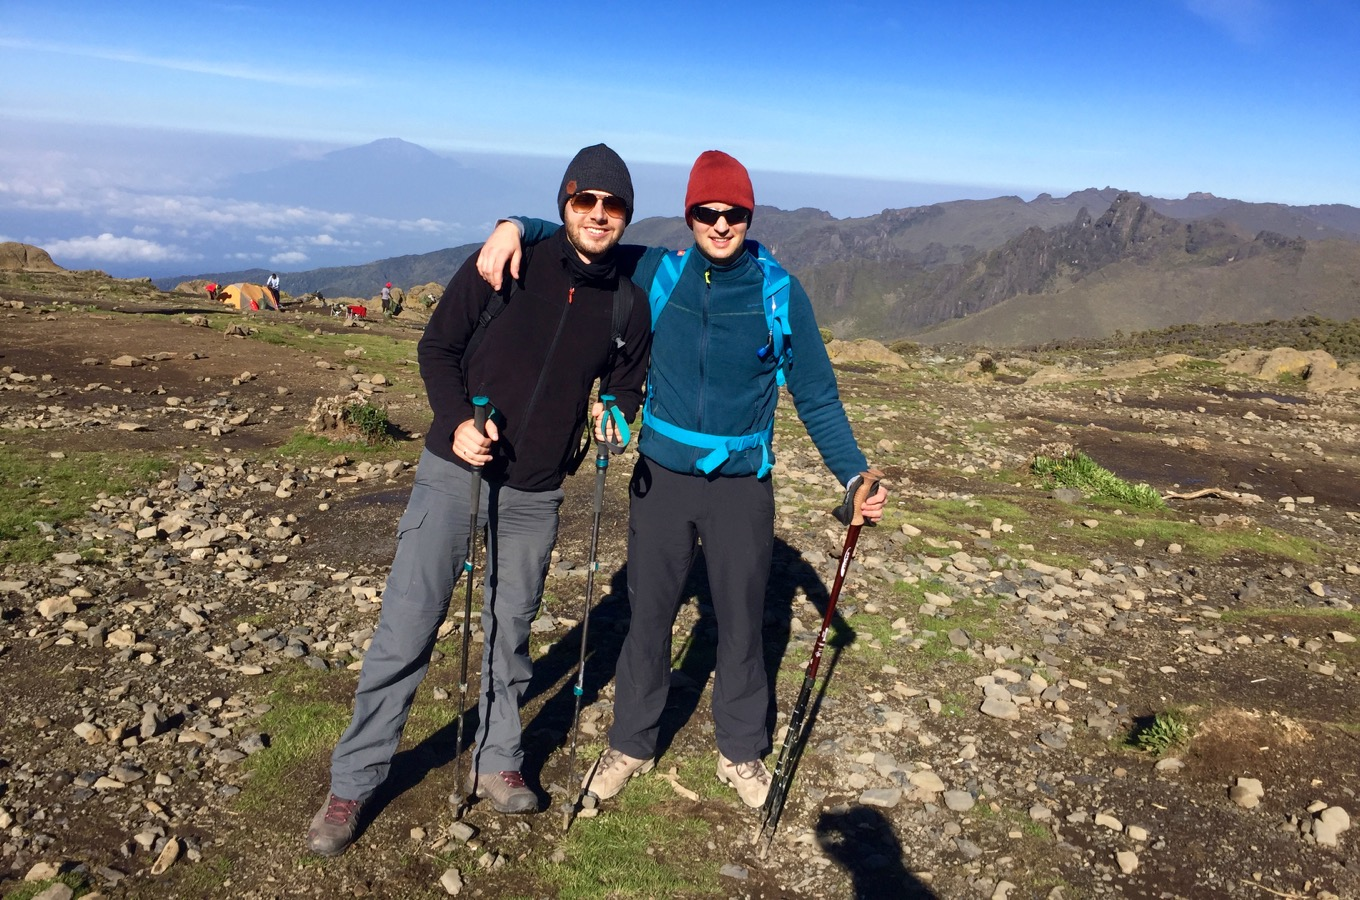 A personal experience with altitude sickness while climbing kilimanjaro